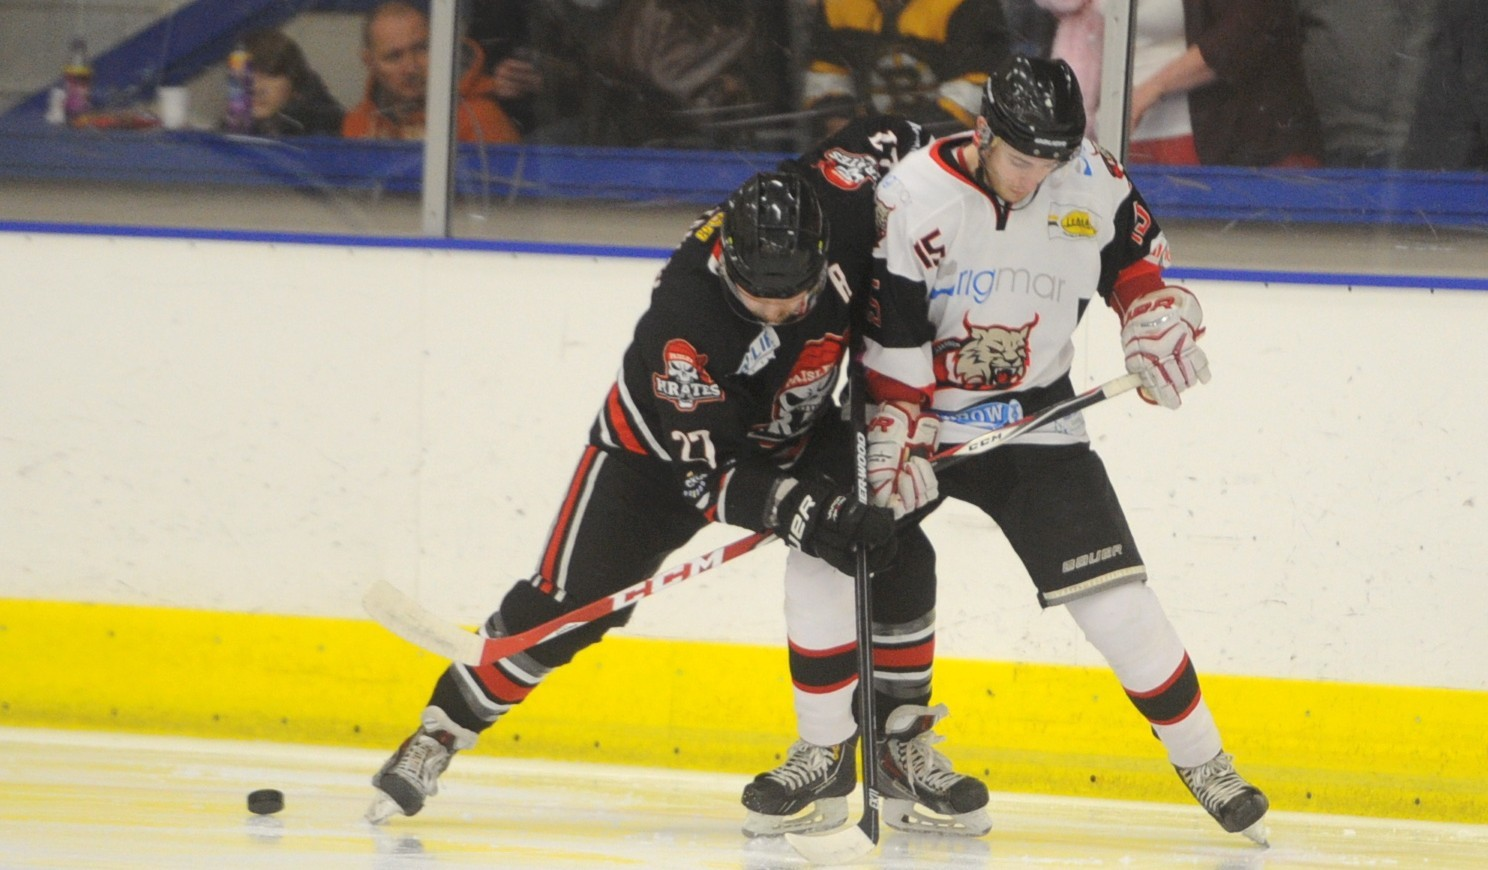 Lynx's Iain Malcolm, right, and Paisley Pirate  Scott Cowan.  Picture by Chris Sumner.